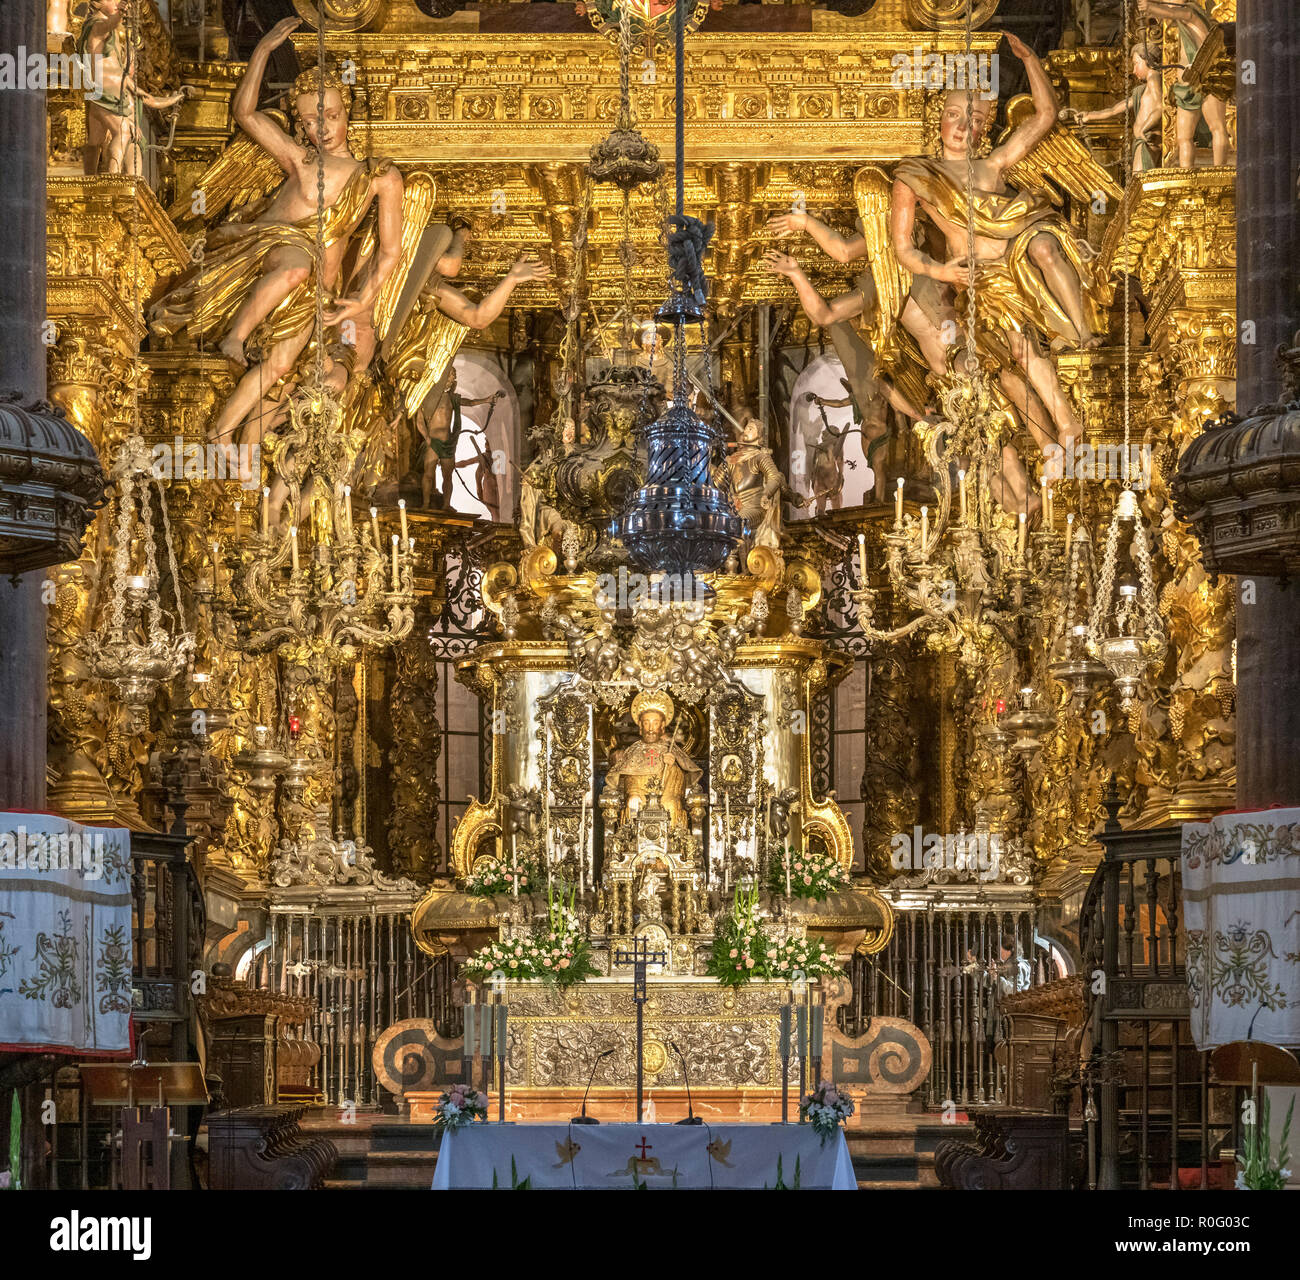 High altar, with the image of St James in the centre and crypt beneath, Cathedral of Santiago de Compostela, Santiago de Compostela, Galicia, Spain - Stock Image